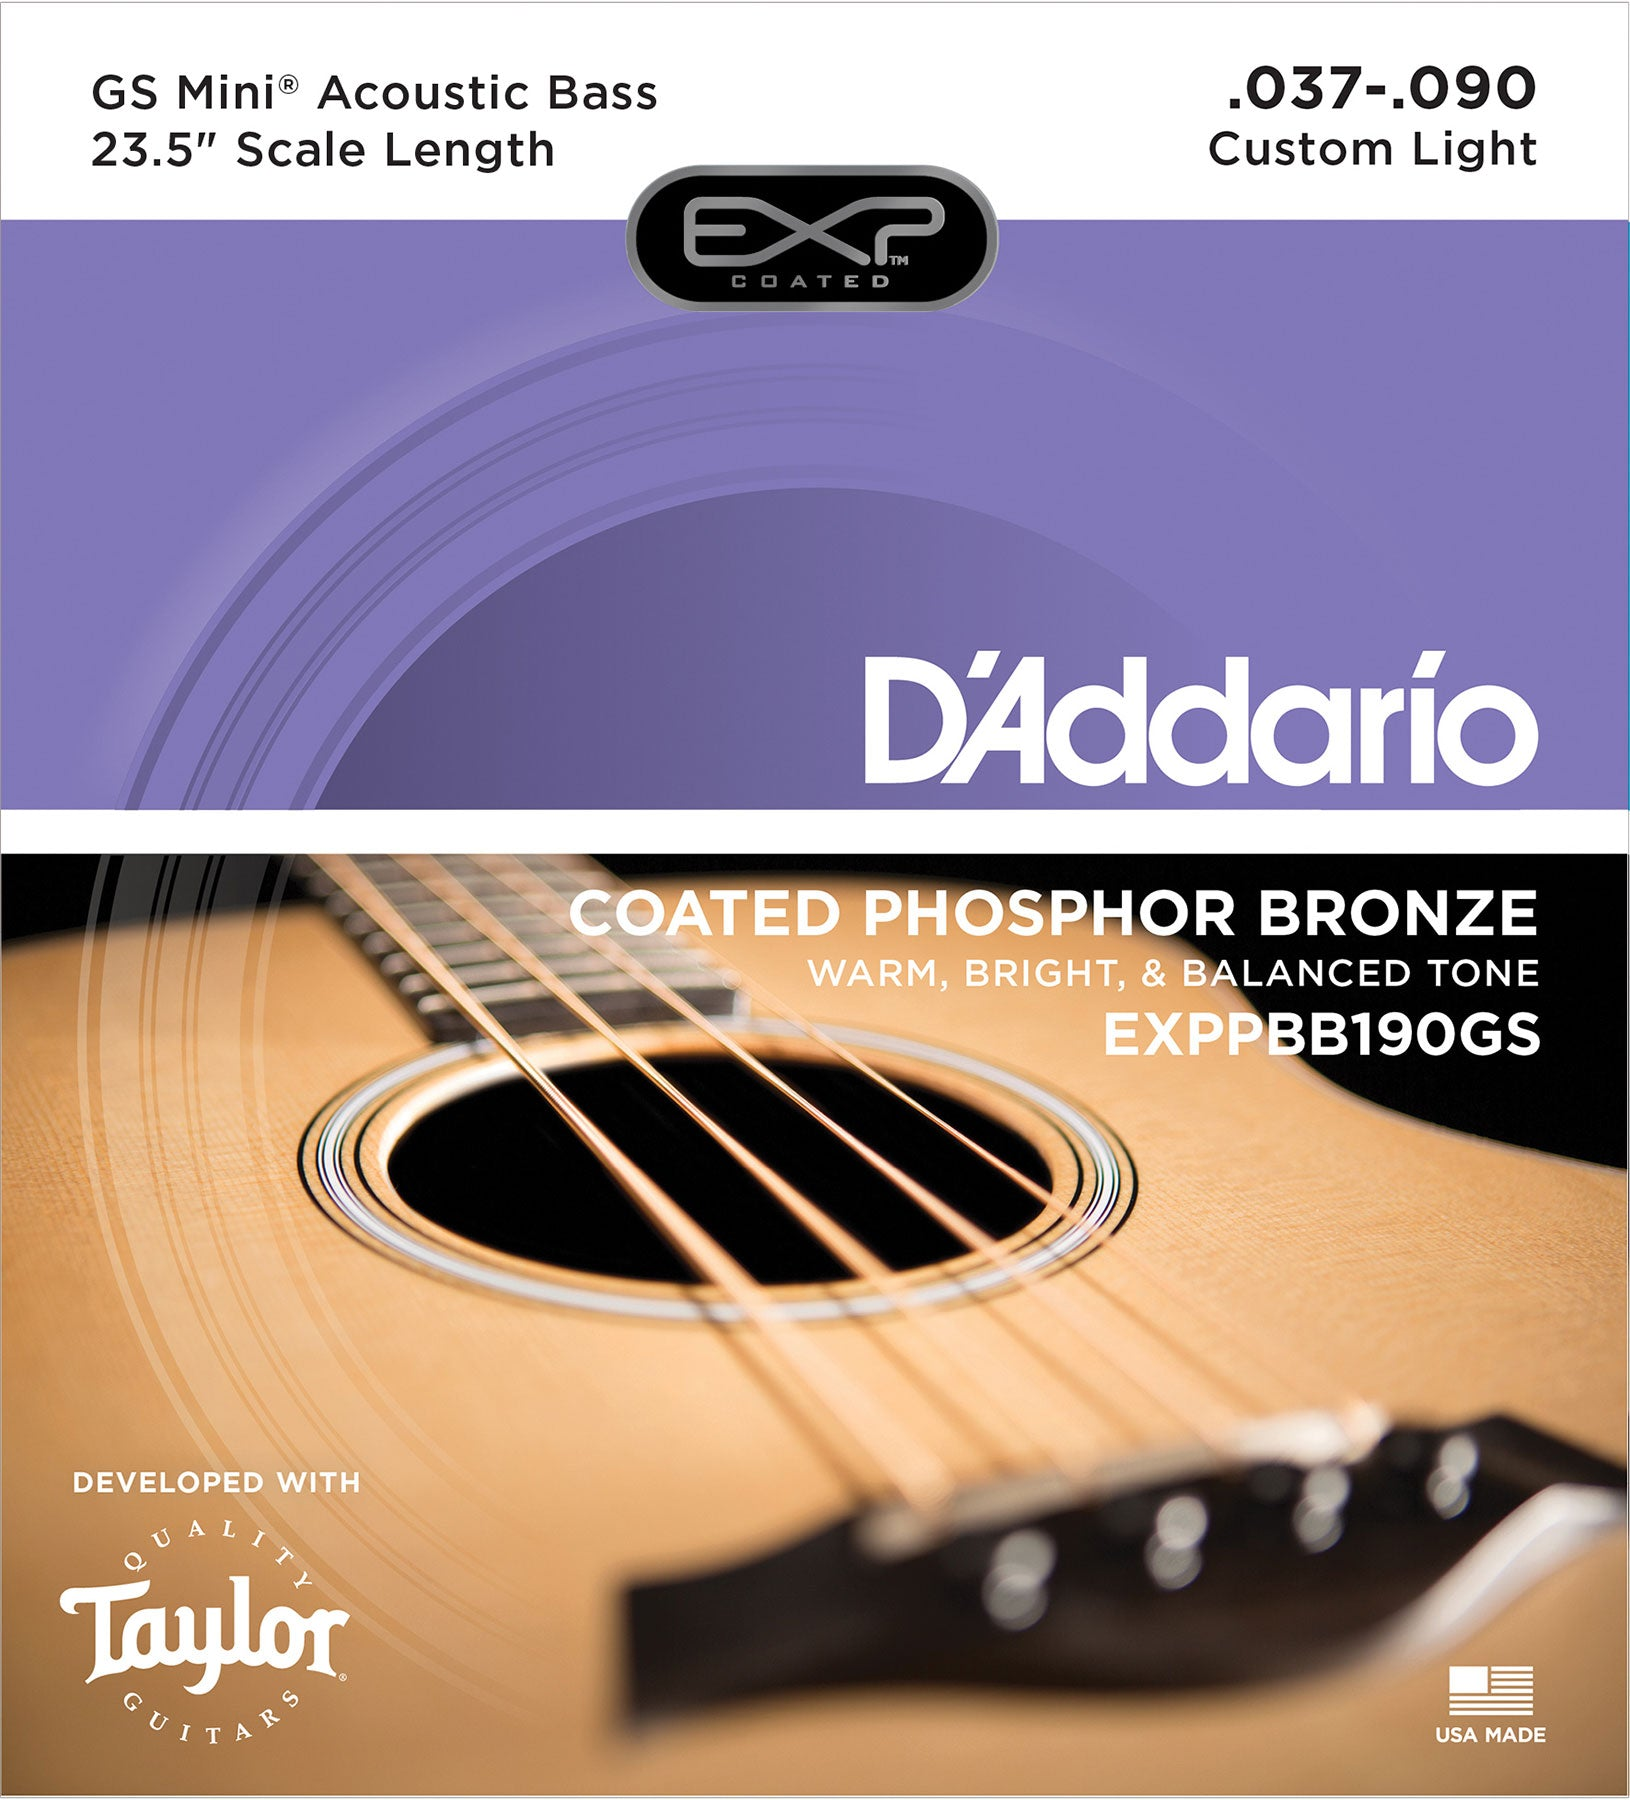 D'ADDARIO EXP GS MINI BASS ACOUSTIC BASS STRINGS 37-90